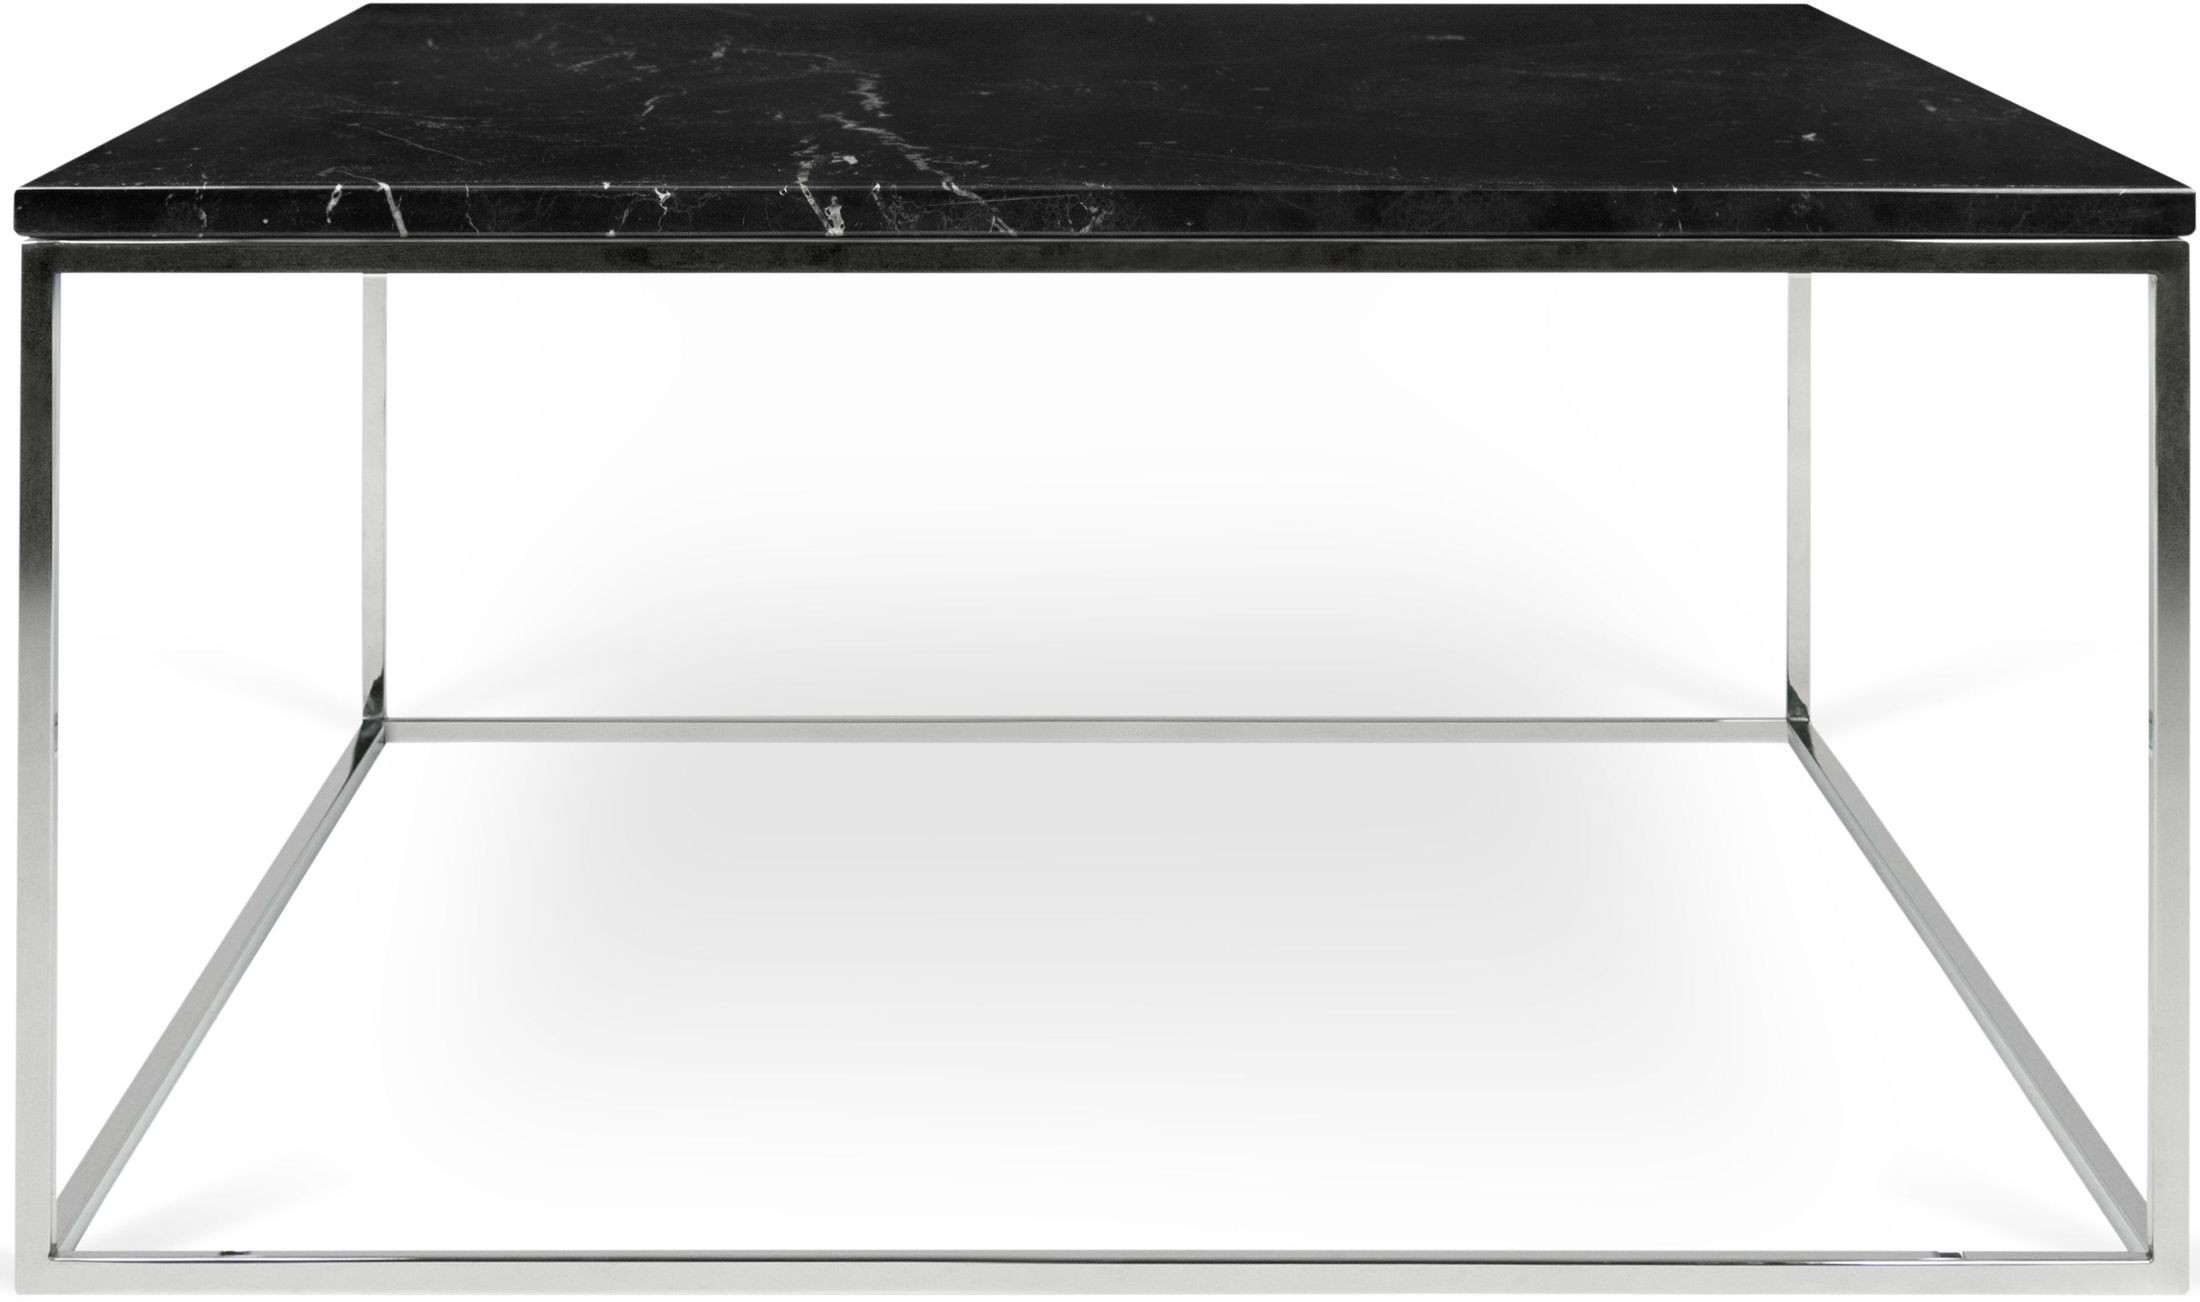 Gleam 30 black marble and chrome coffee table from tema home coleman furniture Black and chrome coffee table